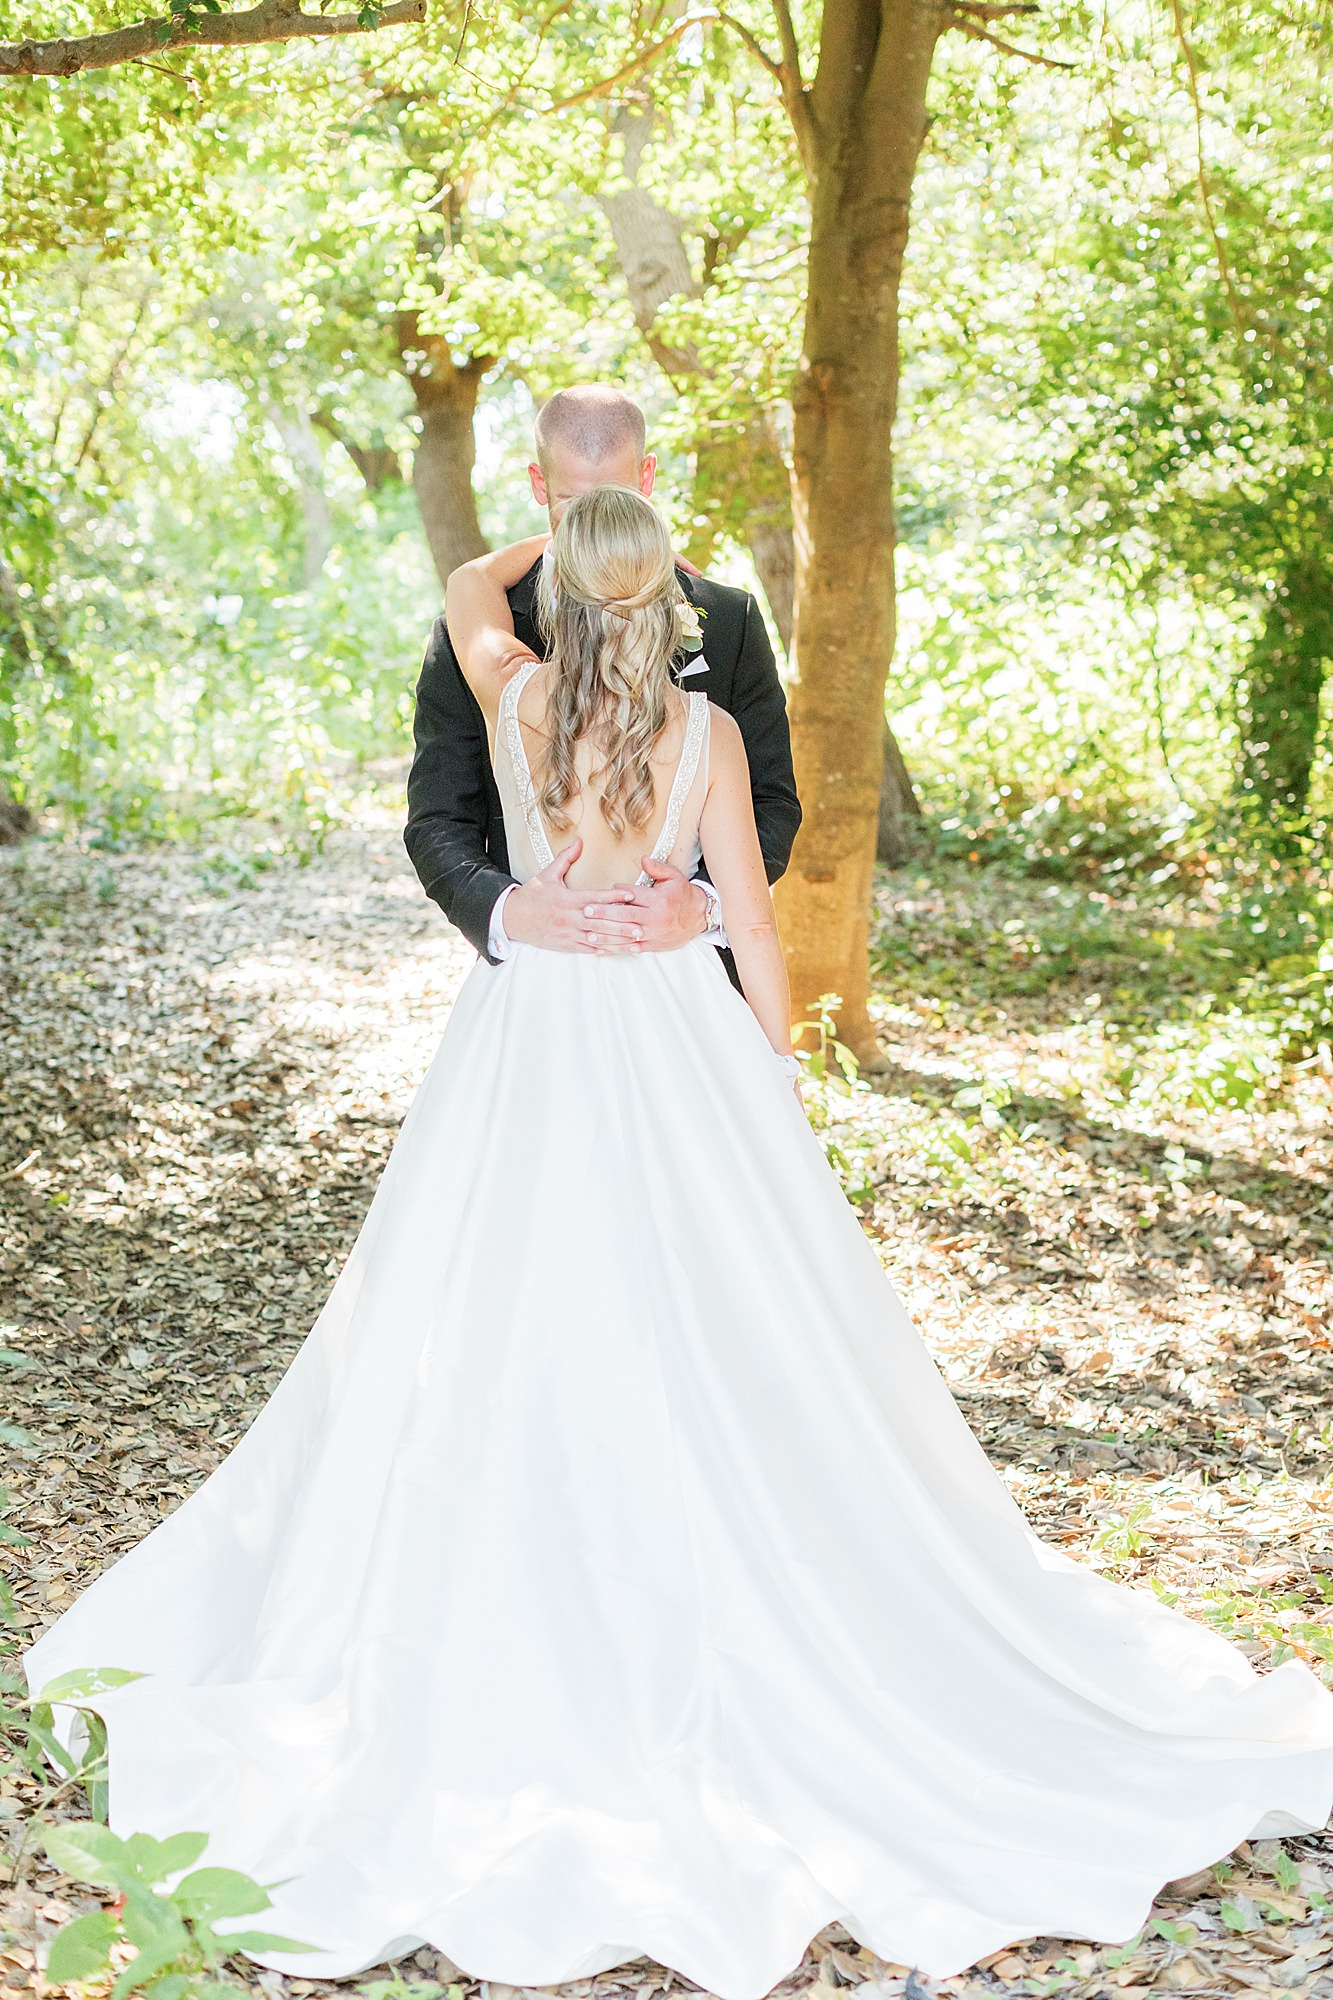 Natural and Vibrant Wedding Photography at the Reeds in Stone Harbor NJ by Magdalena Studios 0045